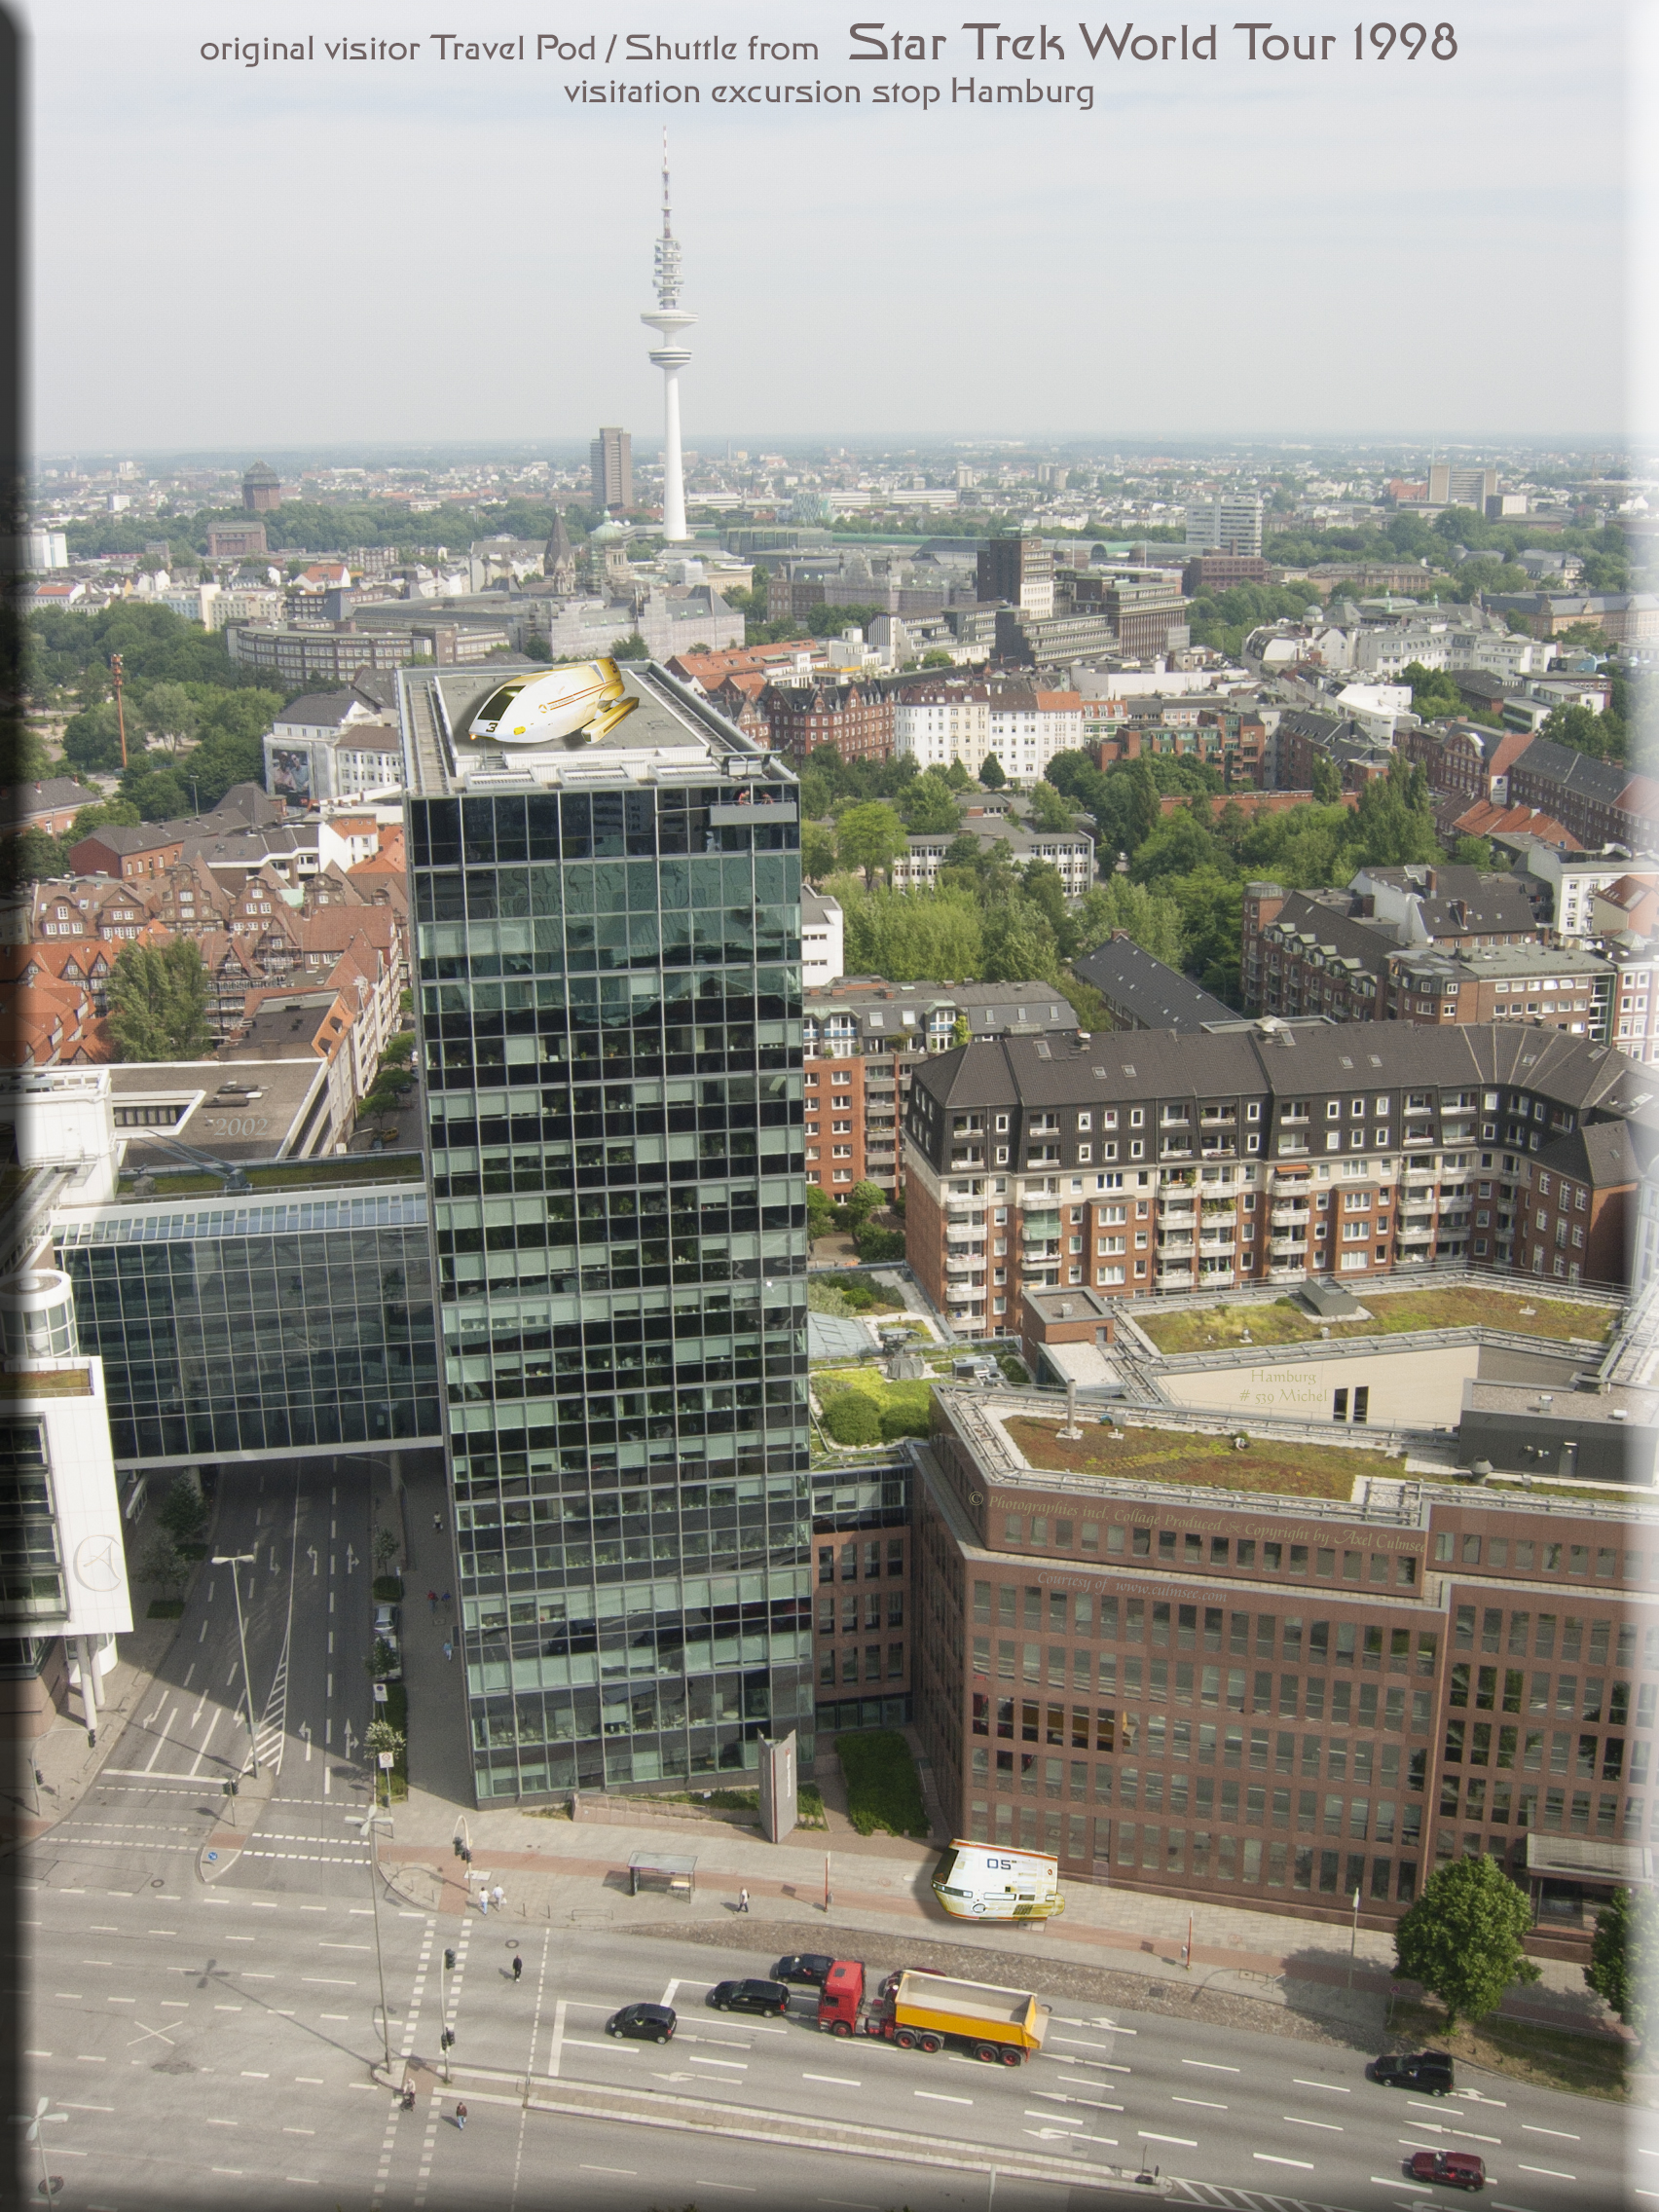 Shuttle Travel Pod timeline STWT 1998 Federation Science European Tour Hamburg City seen from St. Michael's Church